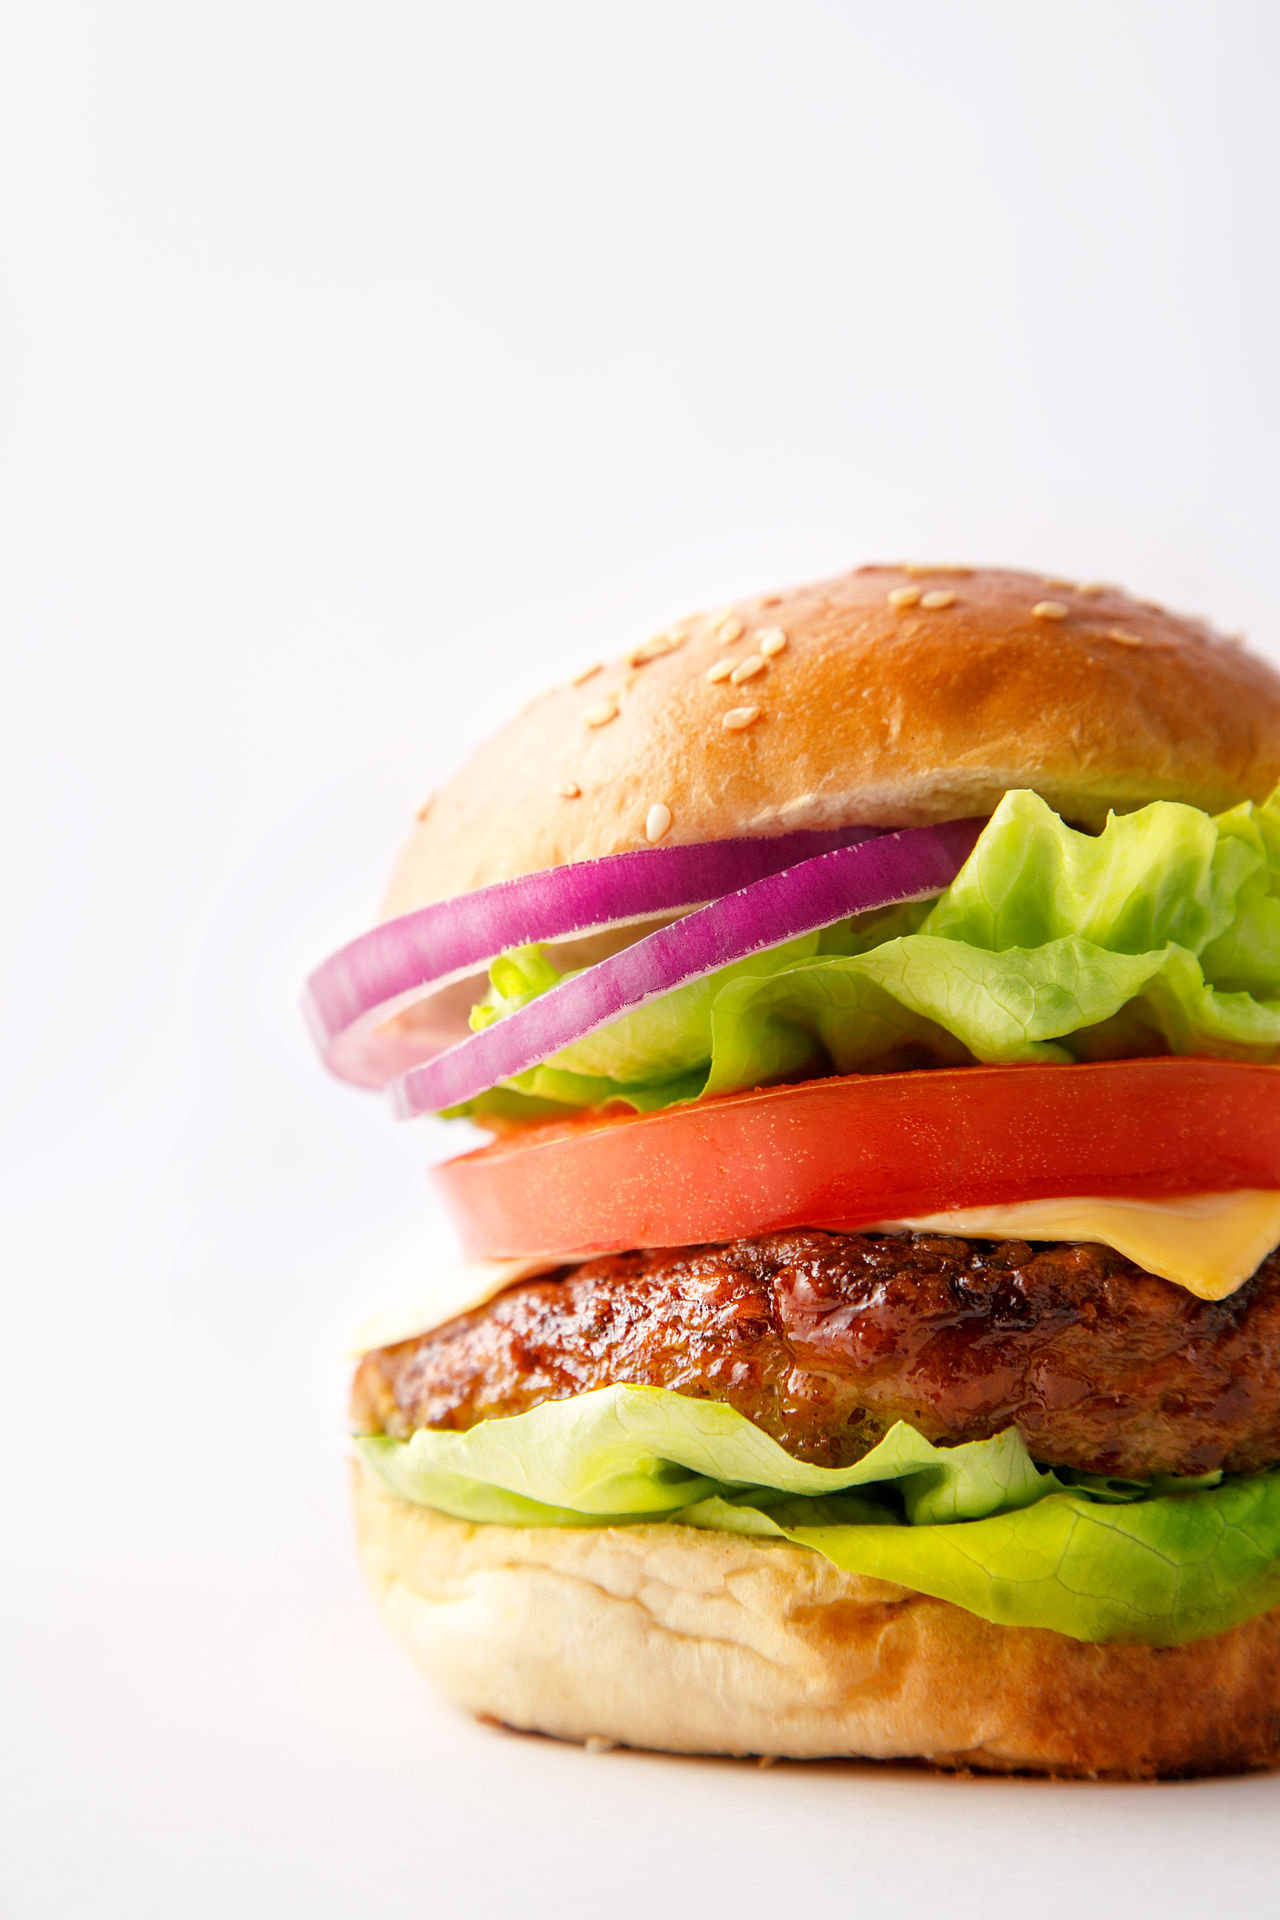 Tasty hamburger on white background Bread Bun Burger Close-up Fast Food Food Food And Drink Freshness Garnish Hamburger Lettuce Meat No People Onion Ready-to-eat Sandwich Sesame SLICE Studio Shot Take Out Food Tomato Unhealthy Eating Vegetable White Background Whole Wheat